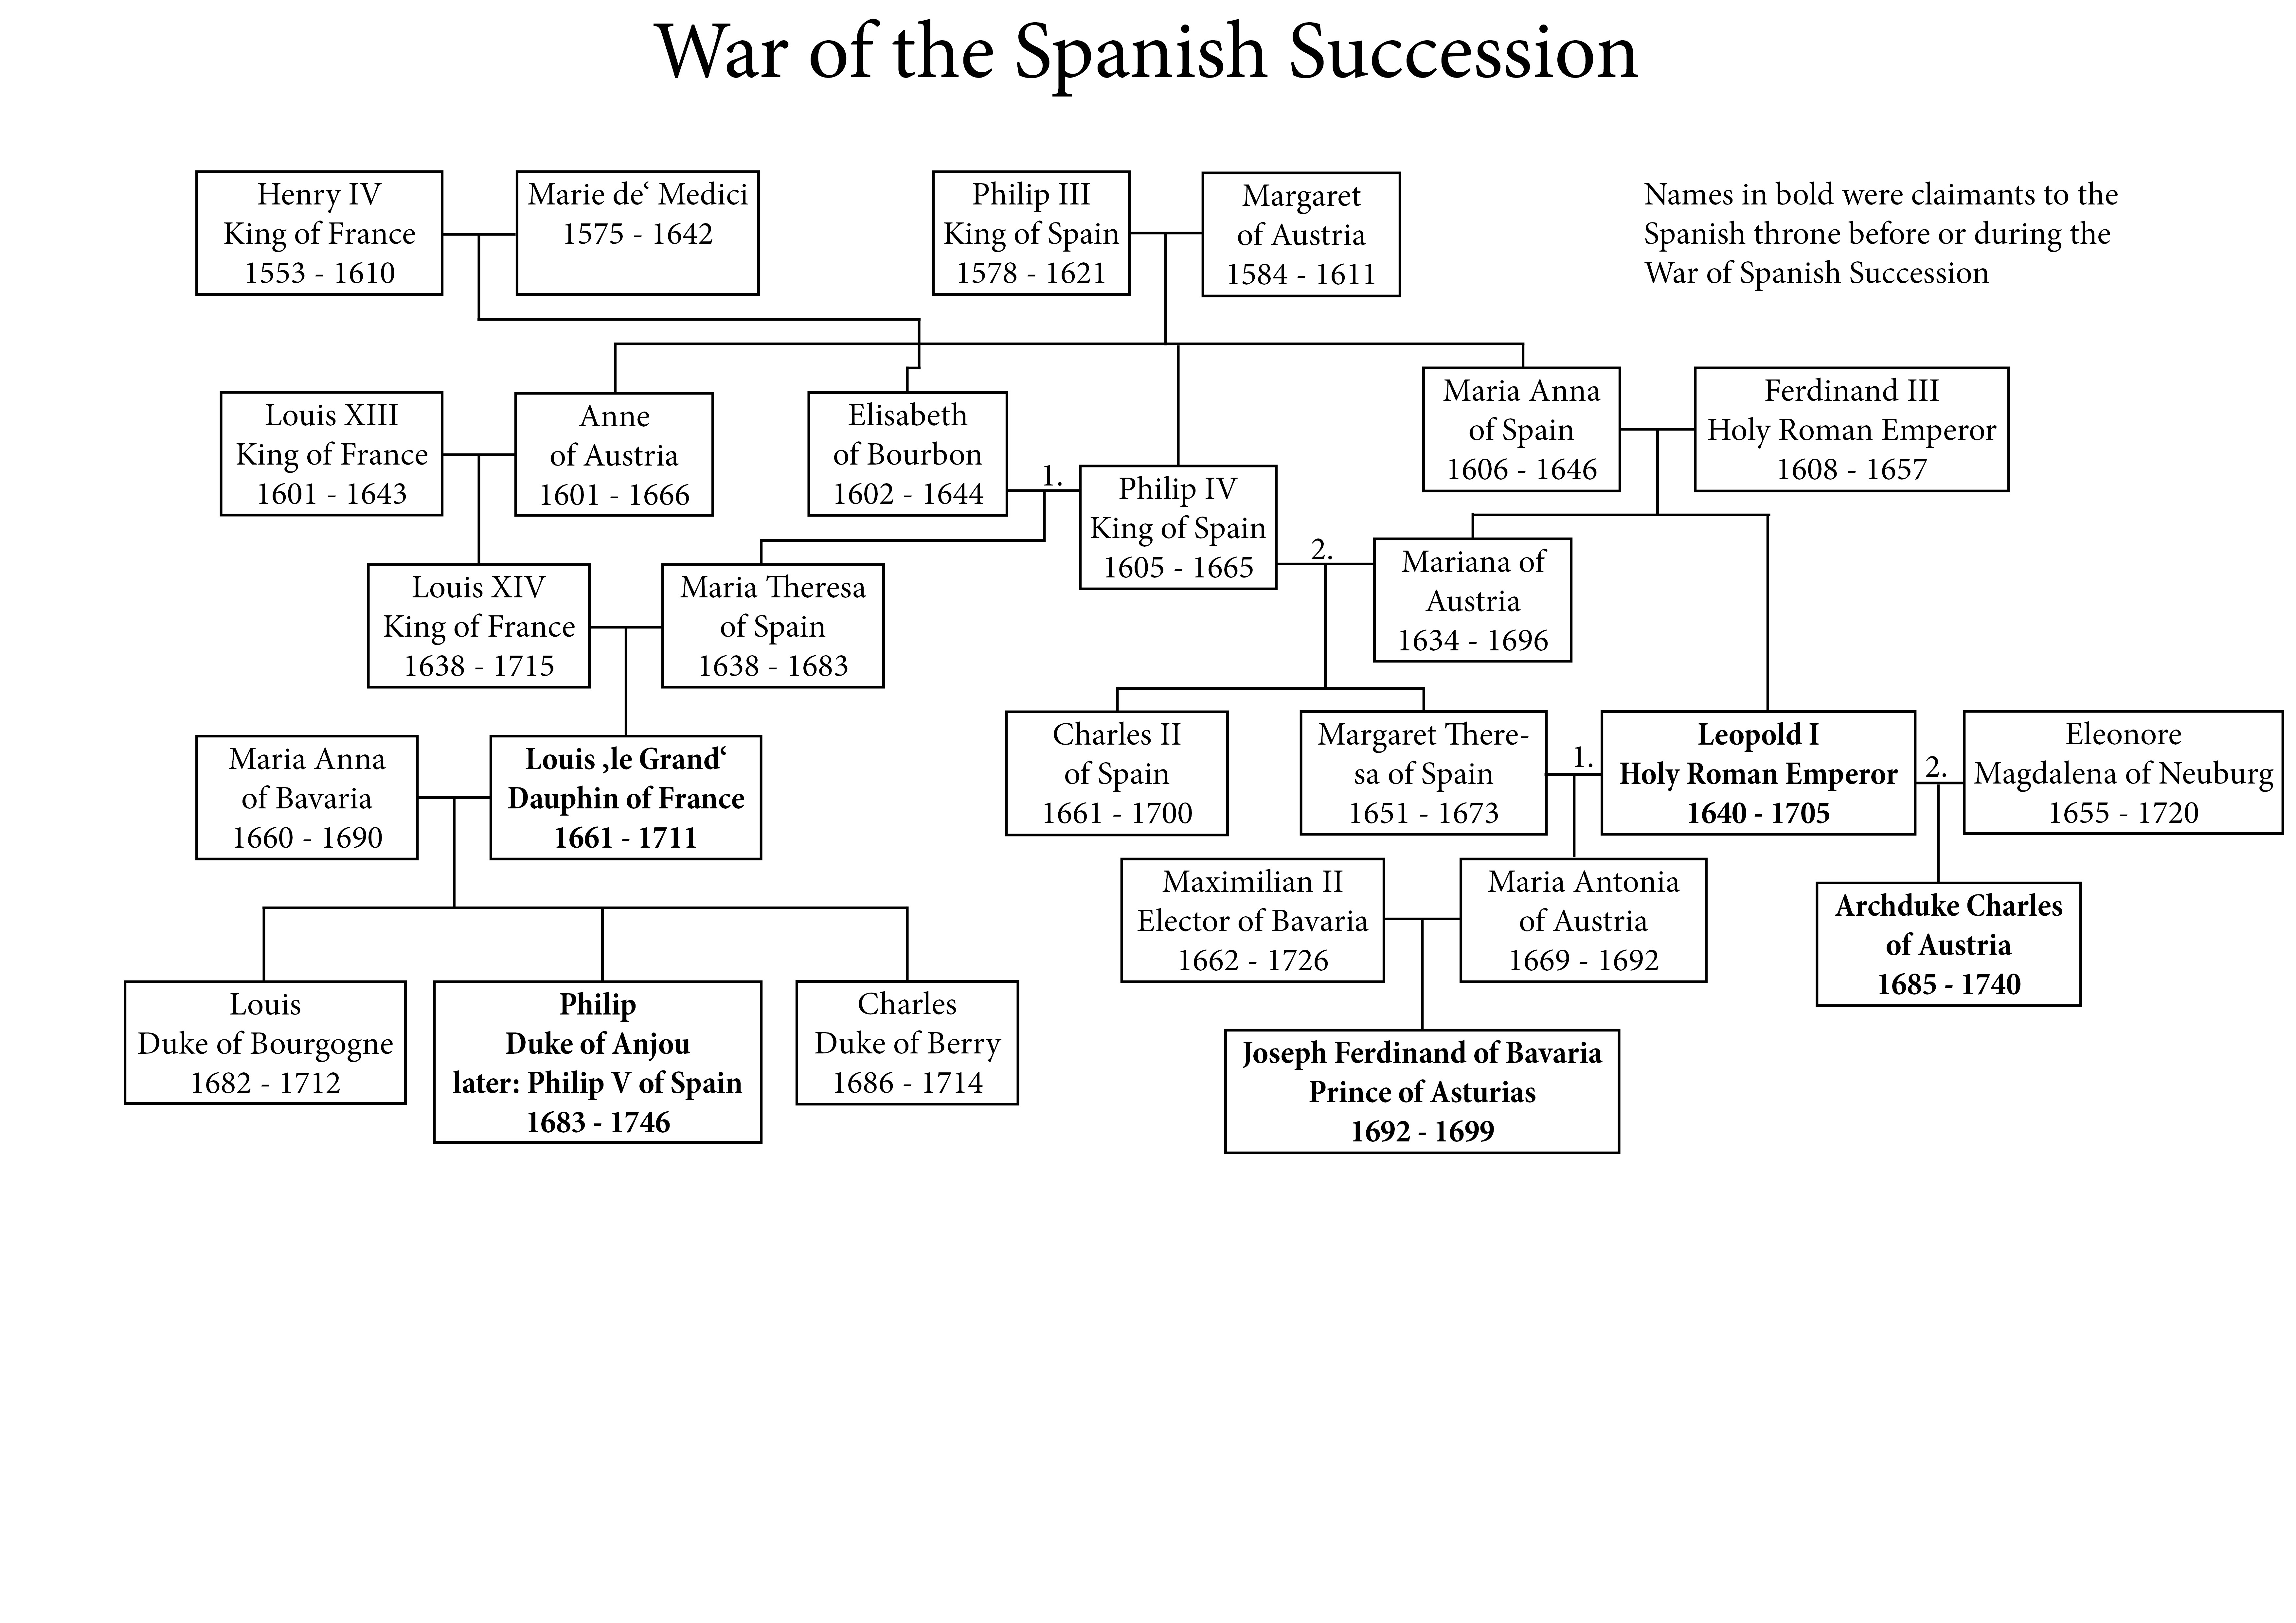 family tree essay spanish Free spanish papers, essays, and research papers these results are sorted by most relevant first (ranked search) you may also sort these by color rating or essay length.